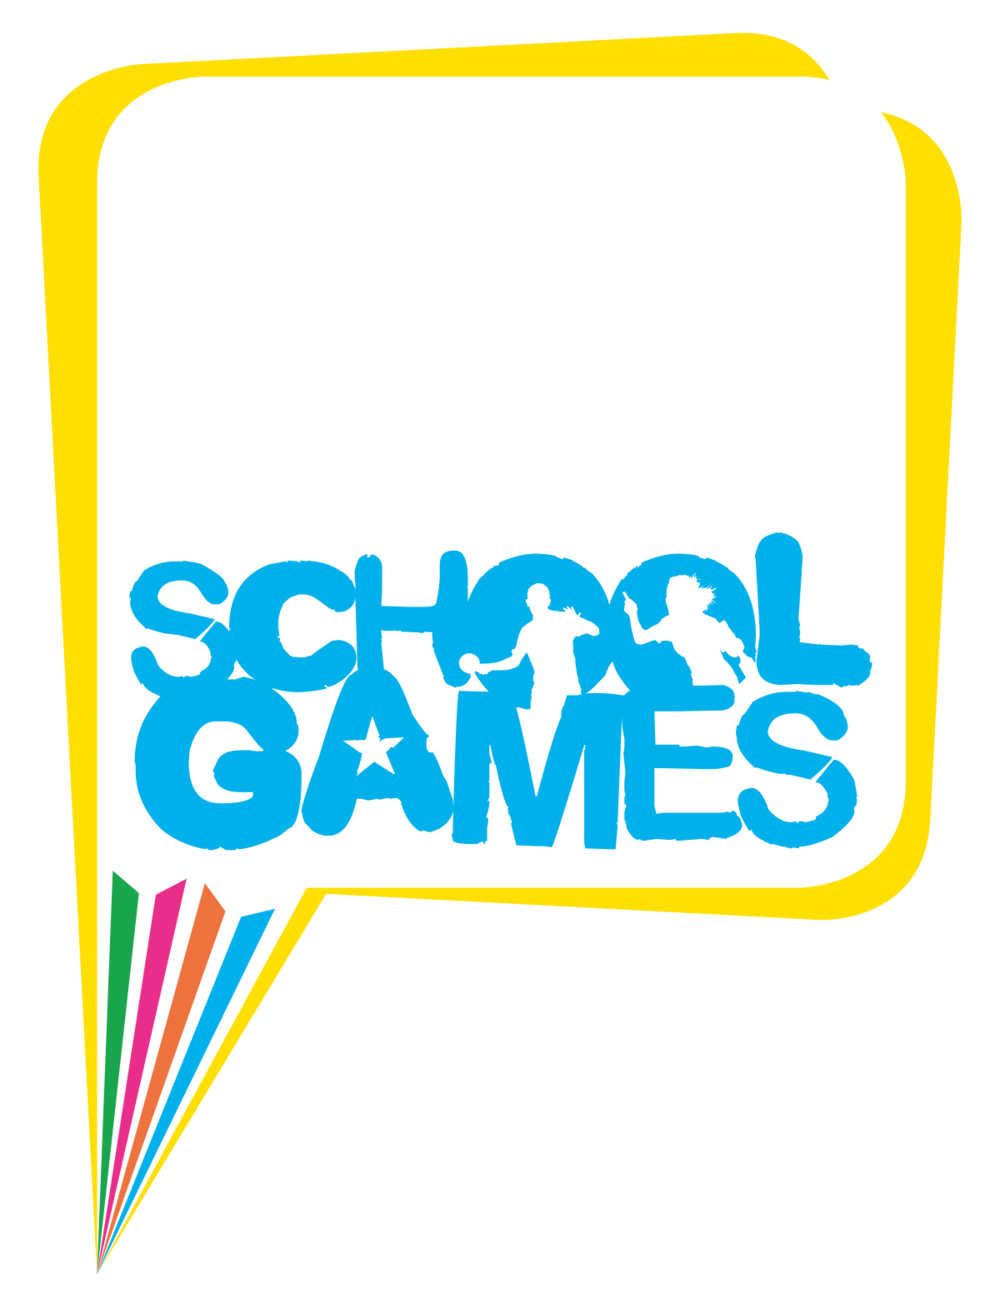 School-Games-L1-3-2015-logo-no-sponsor-rgb.png